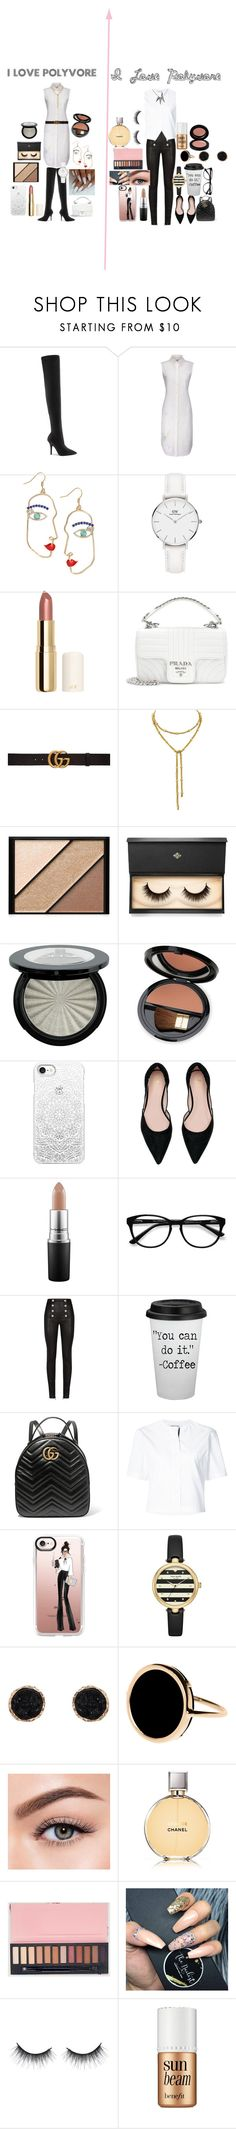 """Sassy Vs Classy"" by explorer-15161245249 ❤ liked on Polyvore featuring Yeezy by Kanye West, Thom Browne, Daniel Wellington, H&M, Prada, Gucci, Elizabeth Arden, Lash Star Beauty, Dr.Hauschka and Casetify"